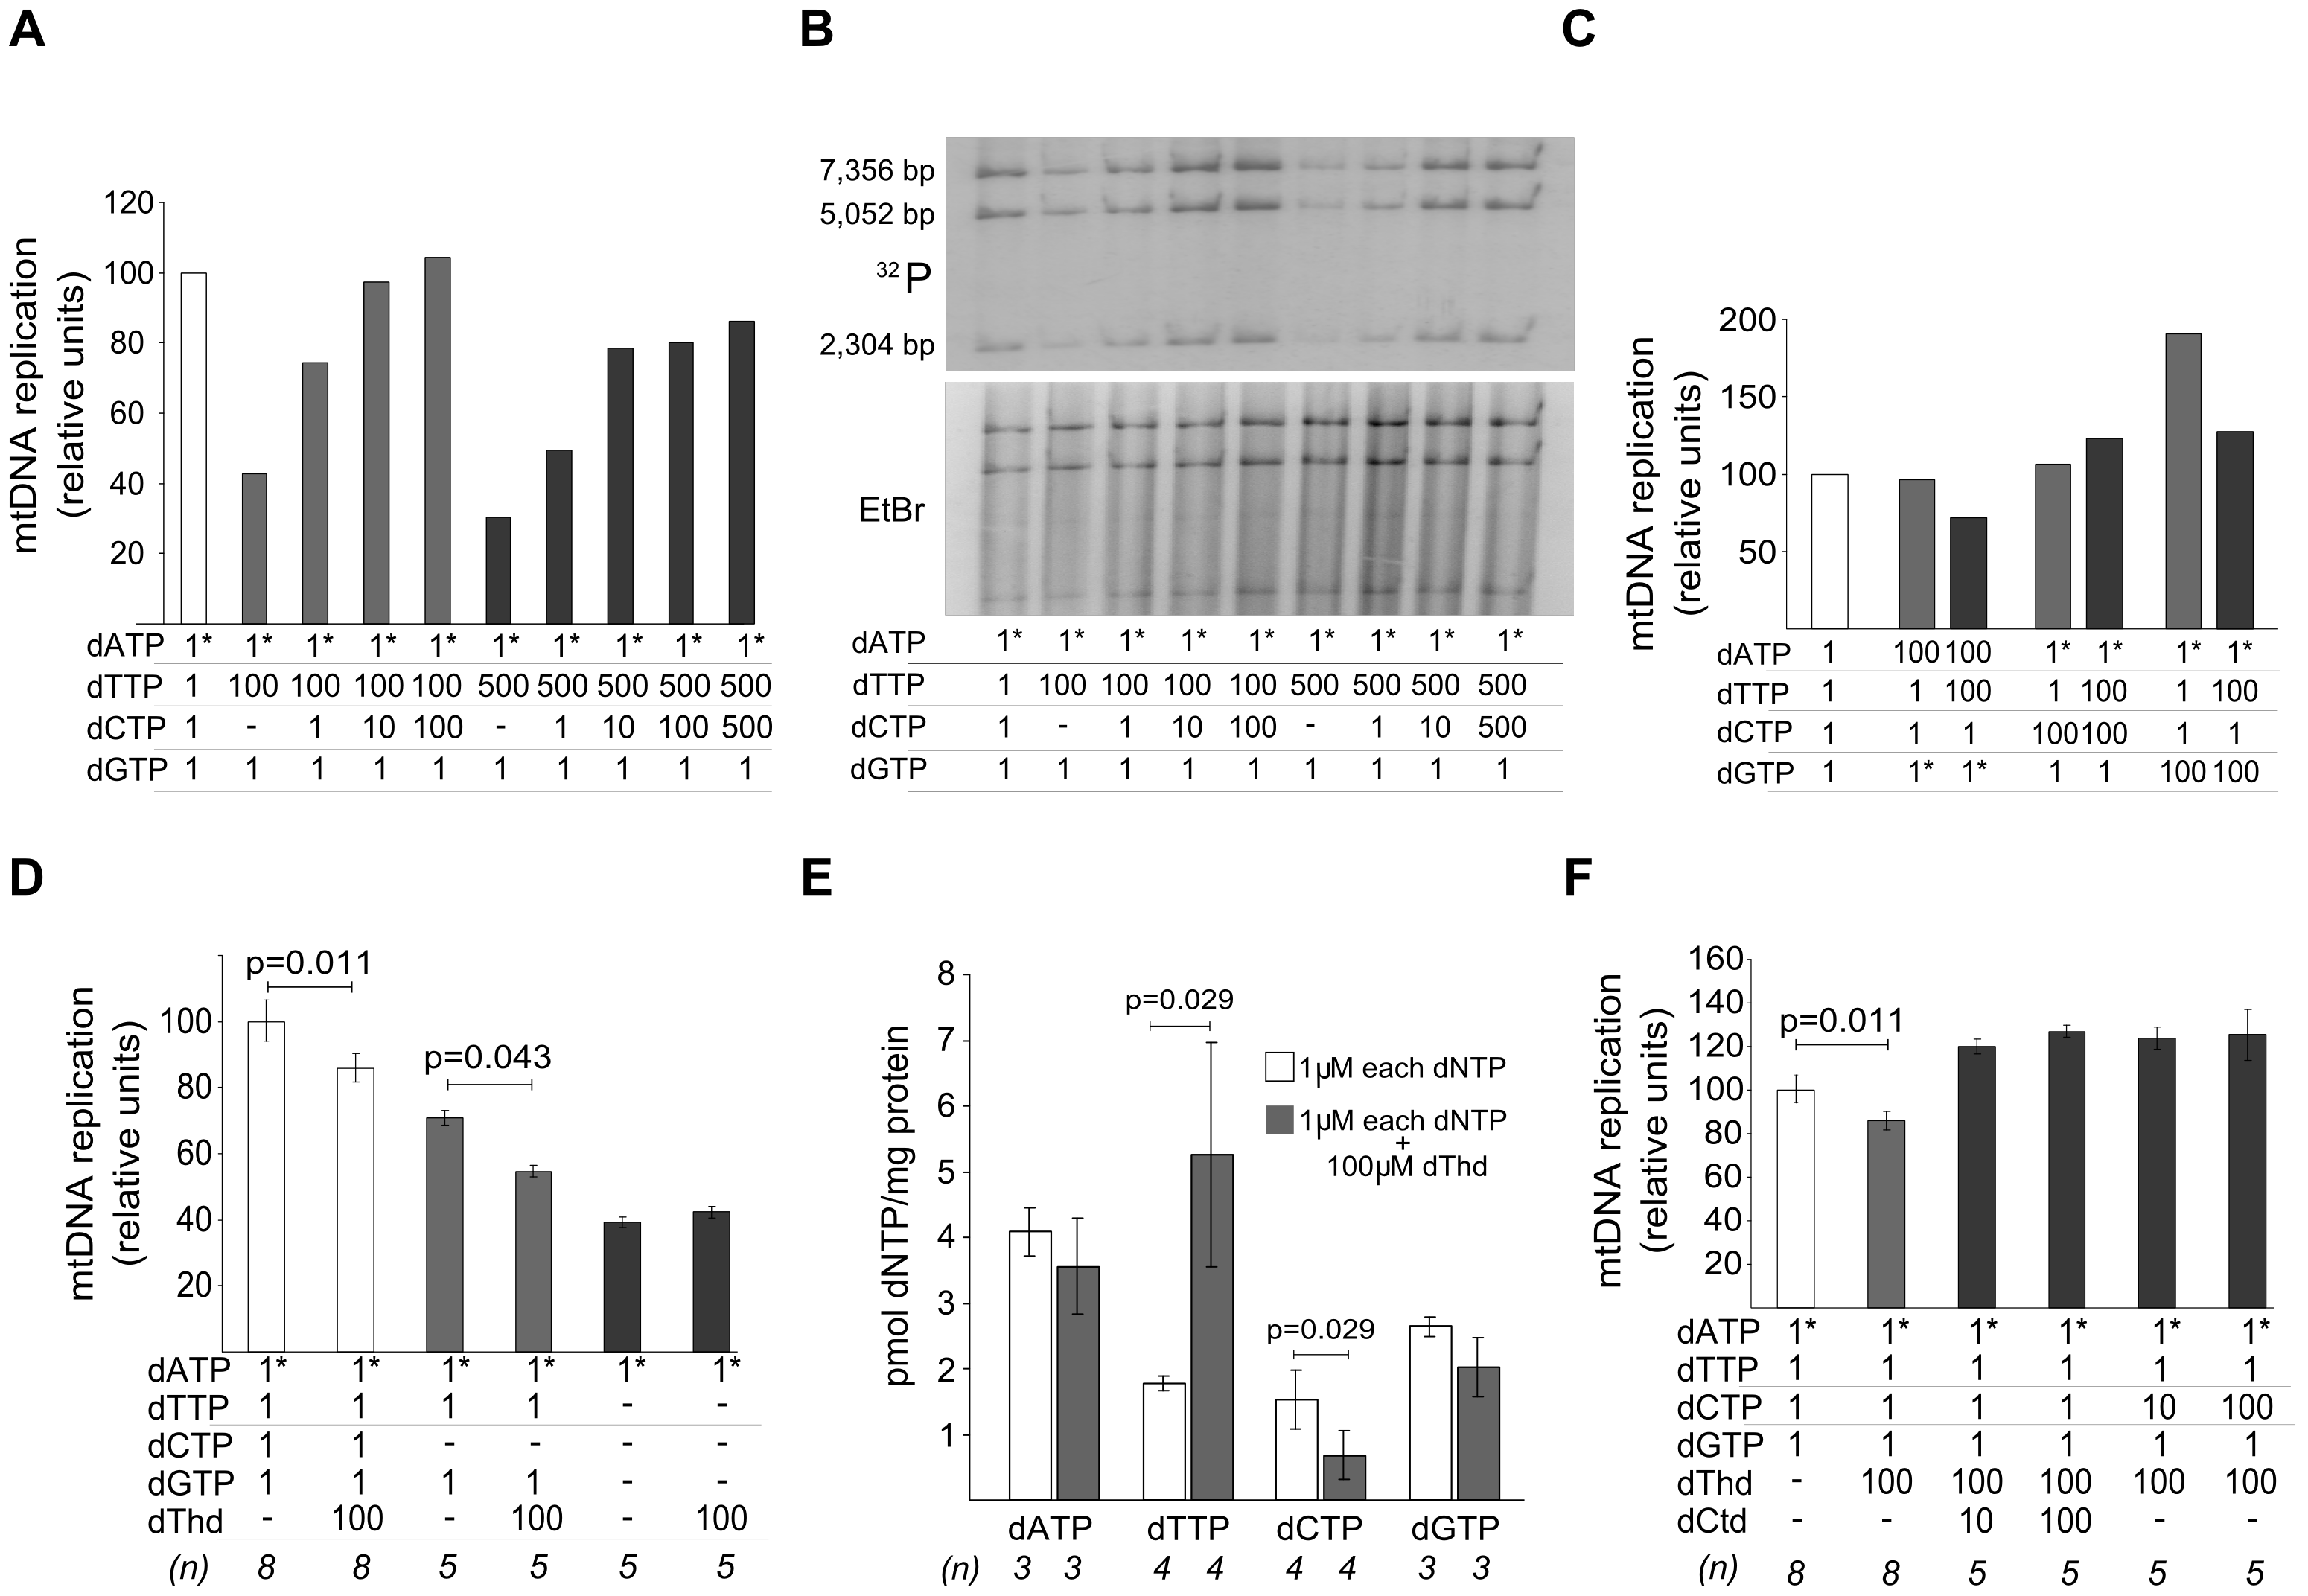 dTTP- and thymidine-induced decrease in mtDNA replication is prevented by dCTP supplementation.